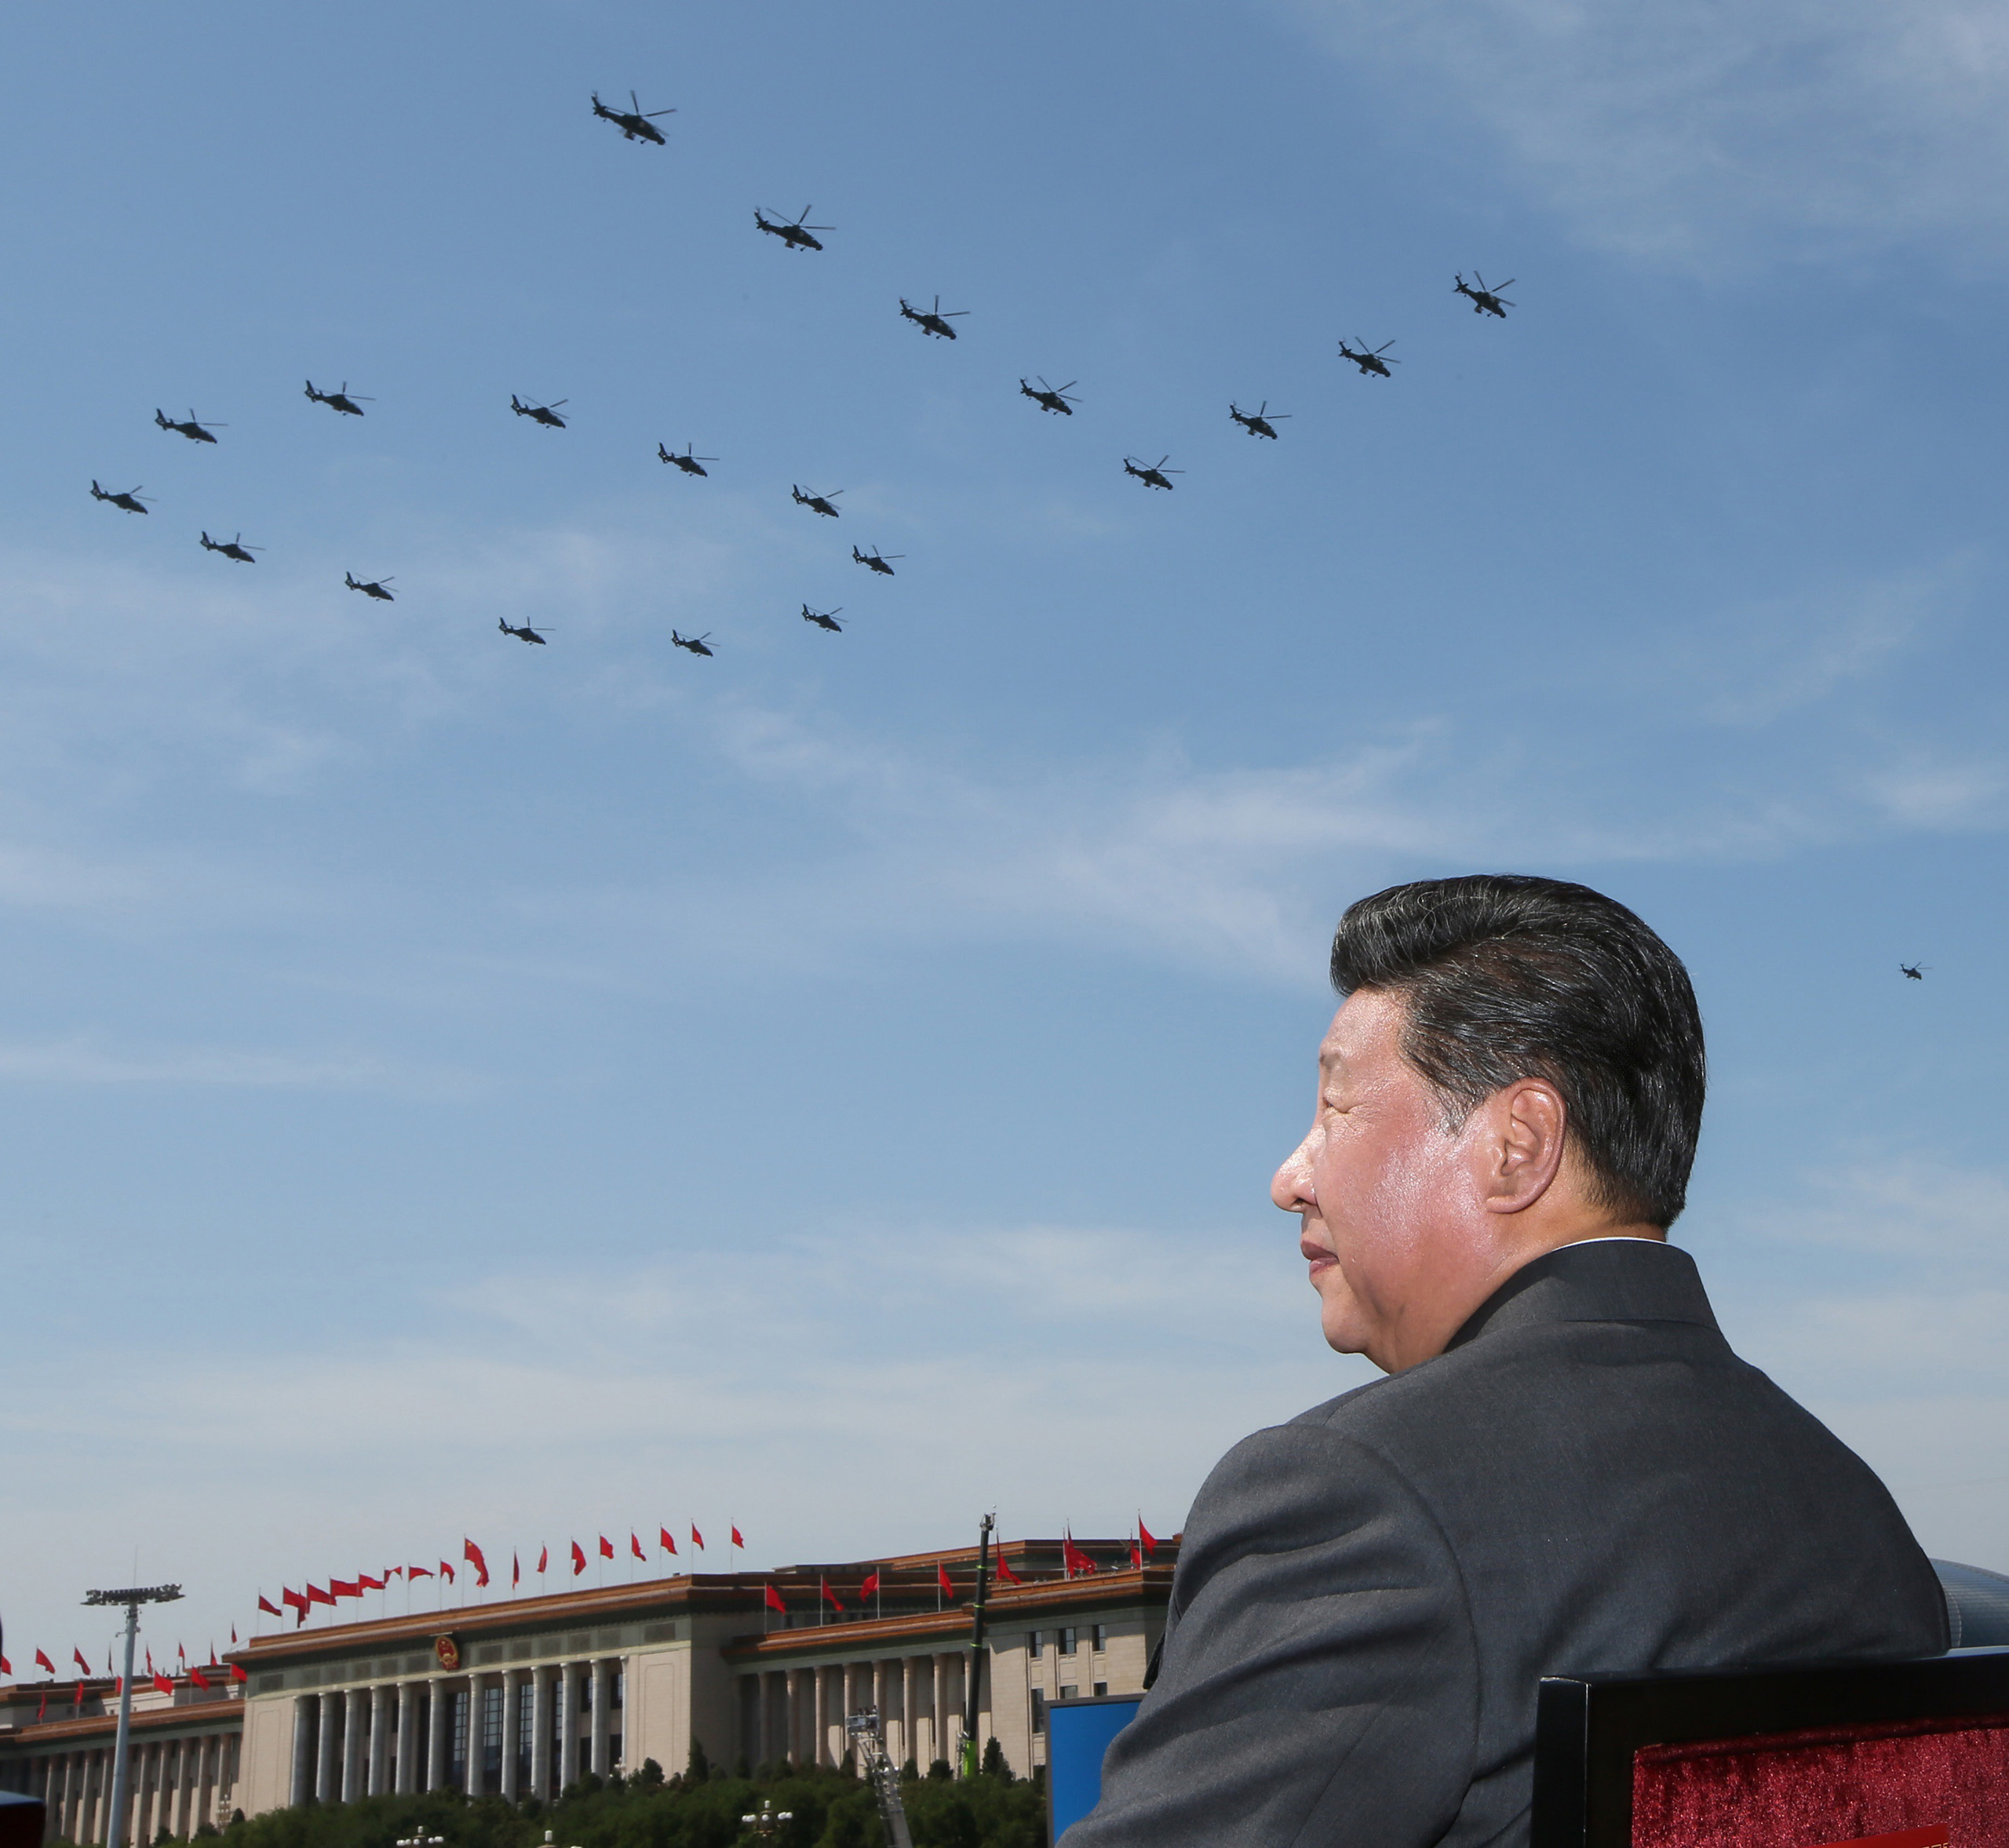 Chinese leader Xi Jinping watches a helicopter fly past, part of a big military parade on Sept. 3 at Beijing's historic Tiananmen Square.